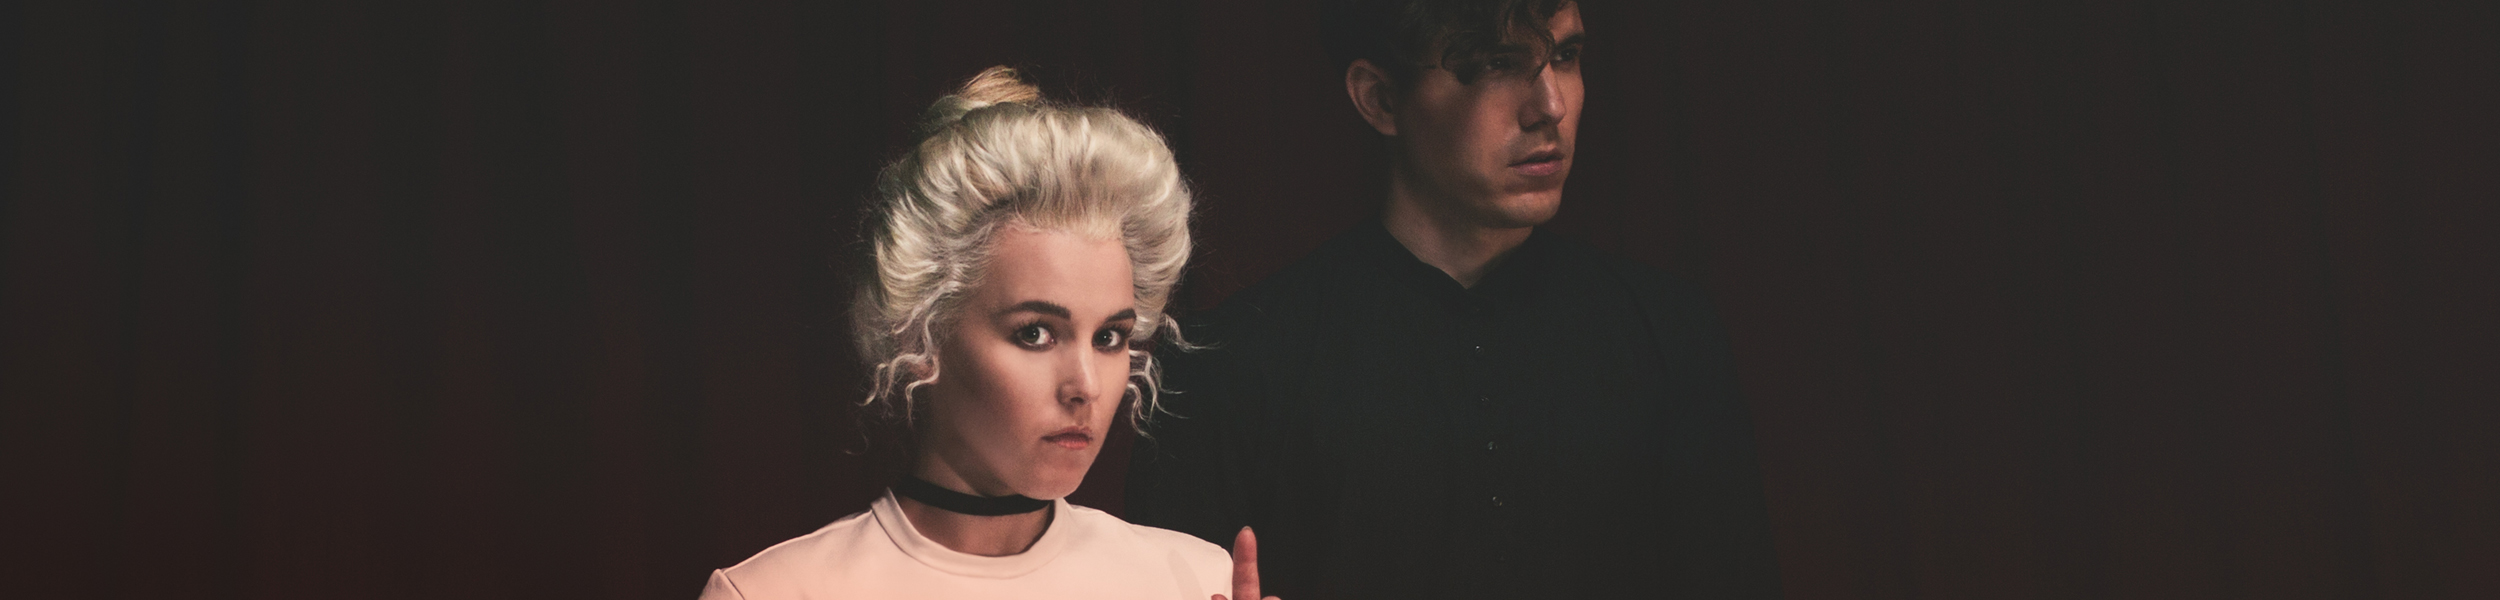 Purity Ring - Watch The New Purity Ring Video for 'Fineshrine'